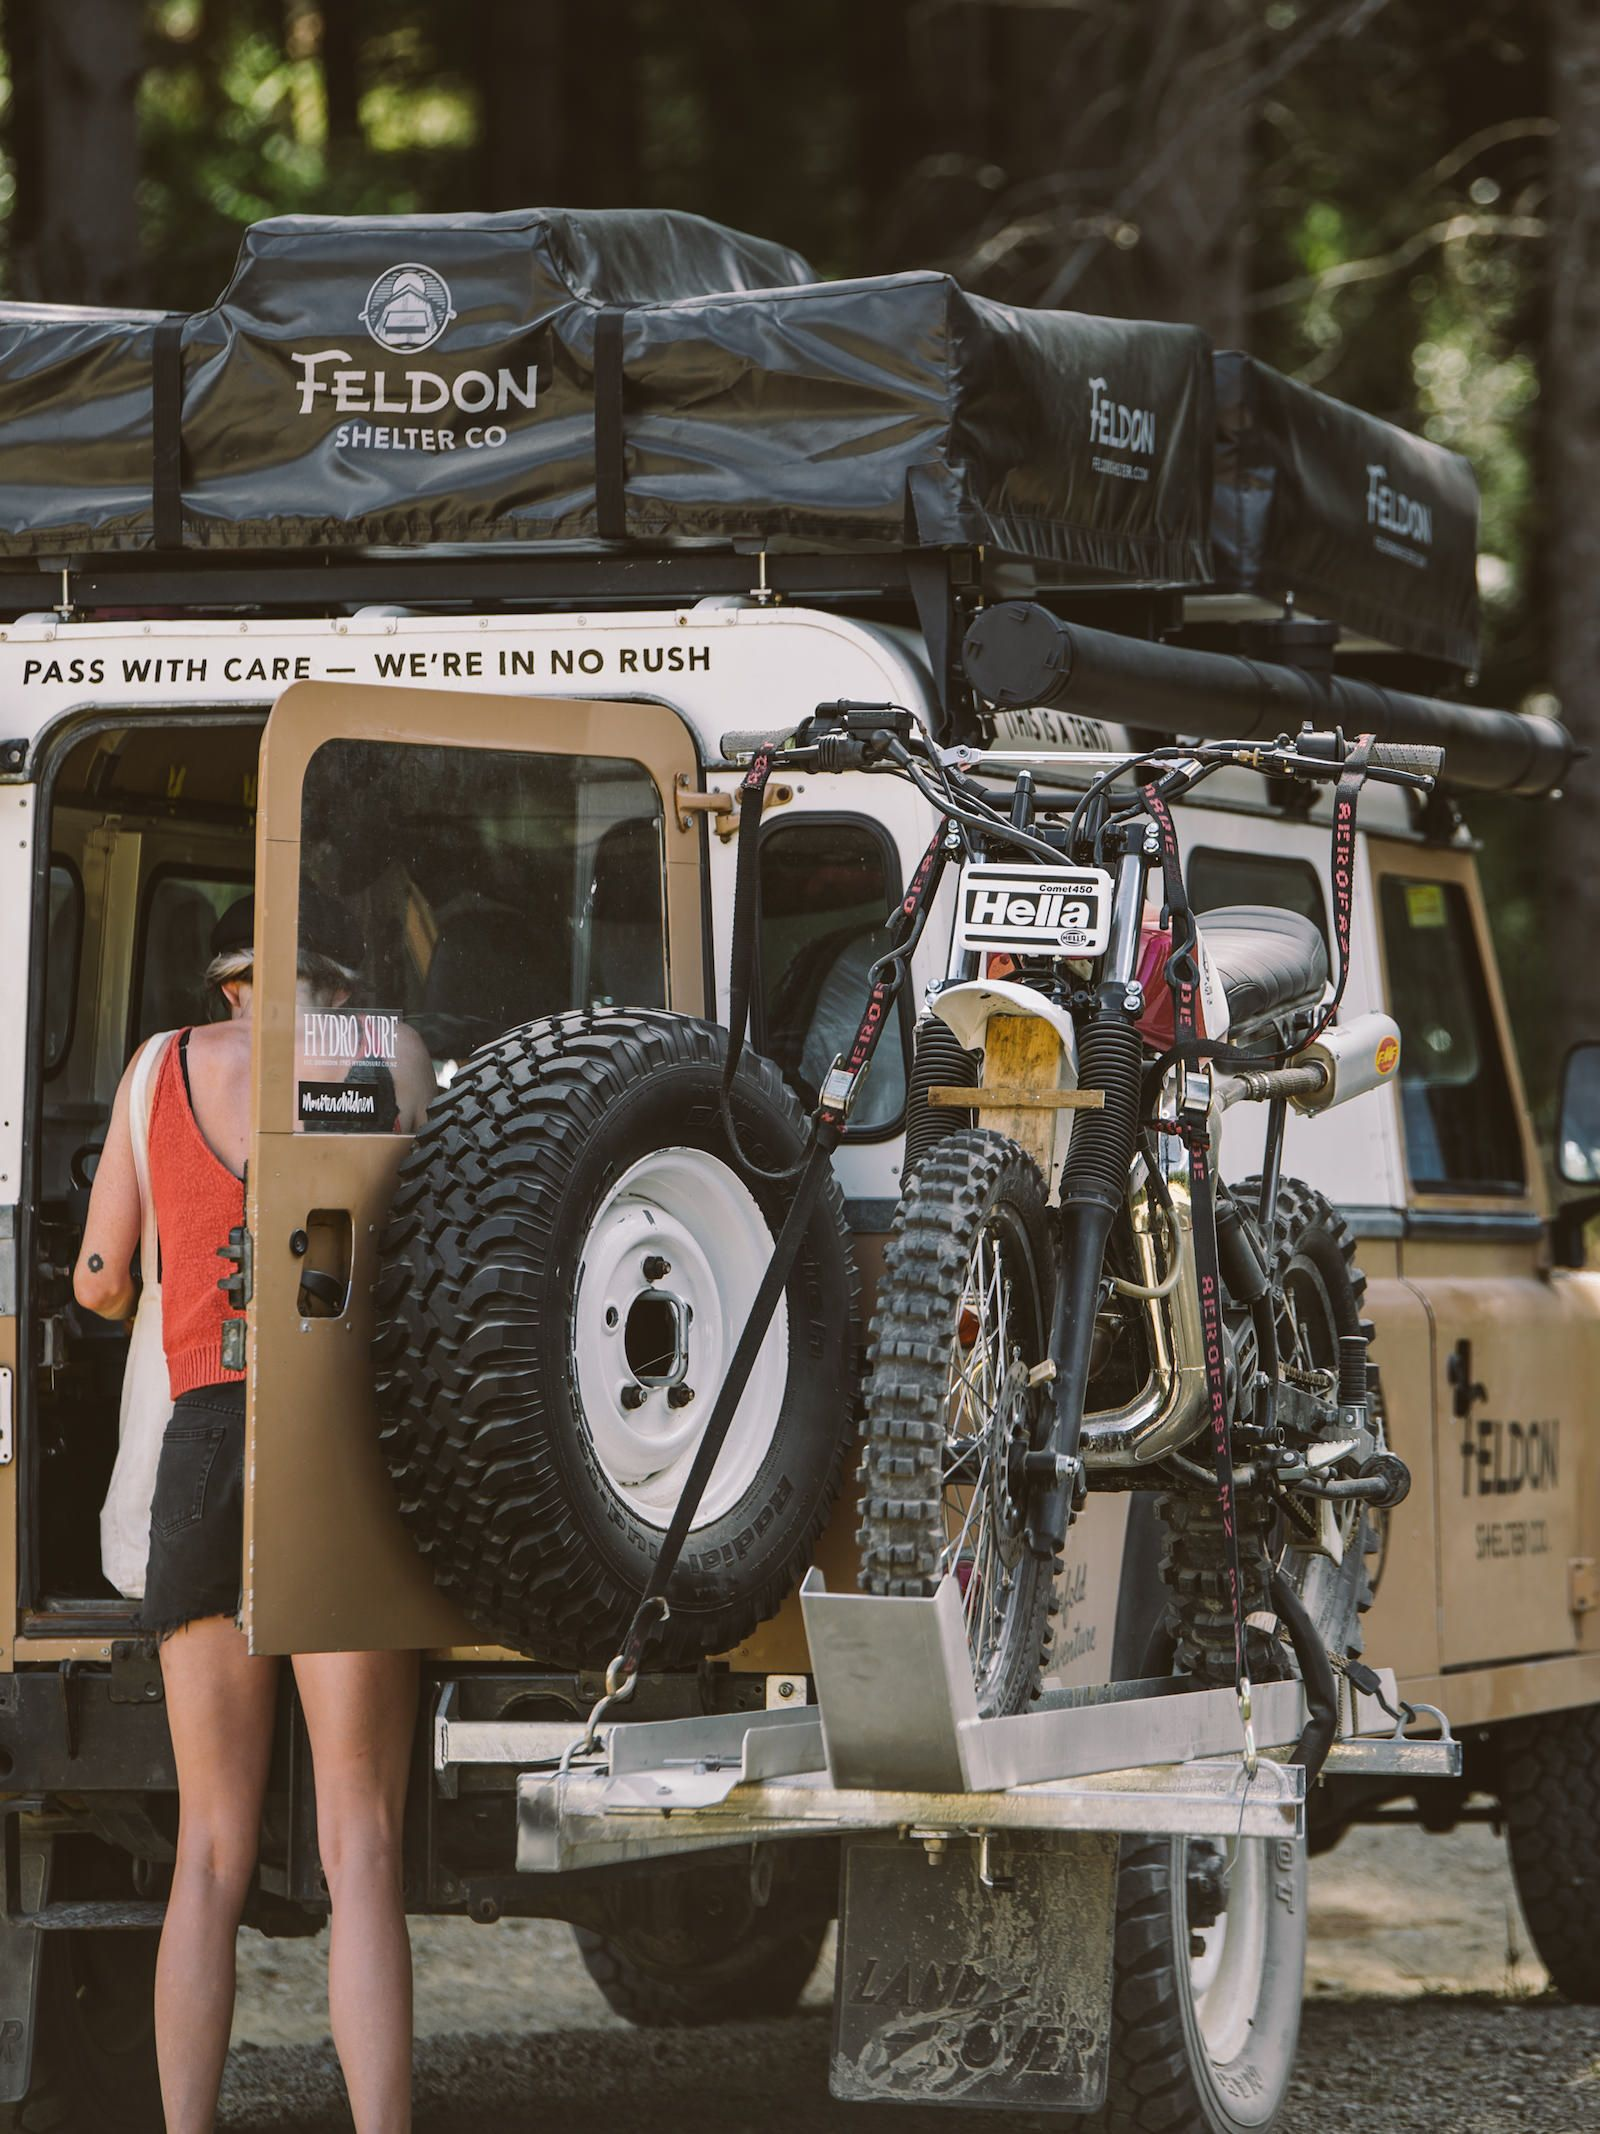 The Crow S Nest Extended Rooftop Tent By Feldon Shelter Land Rover Land Rover Series Land Rover Defender